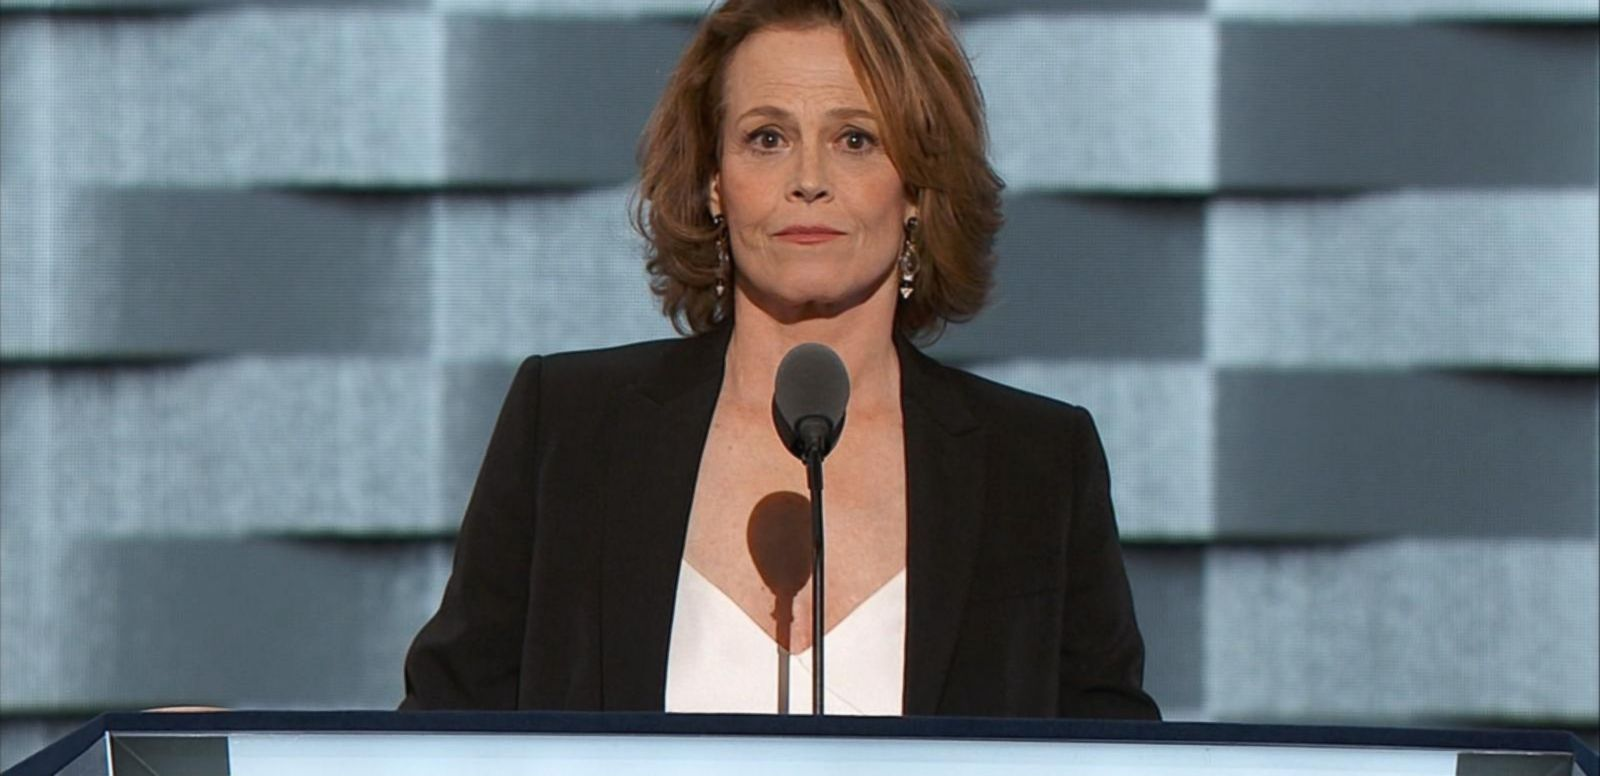 VIDEO: Sigourney Weaver Speaks of Climate Change at DNC